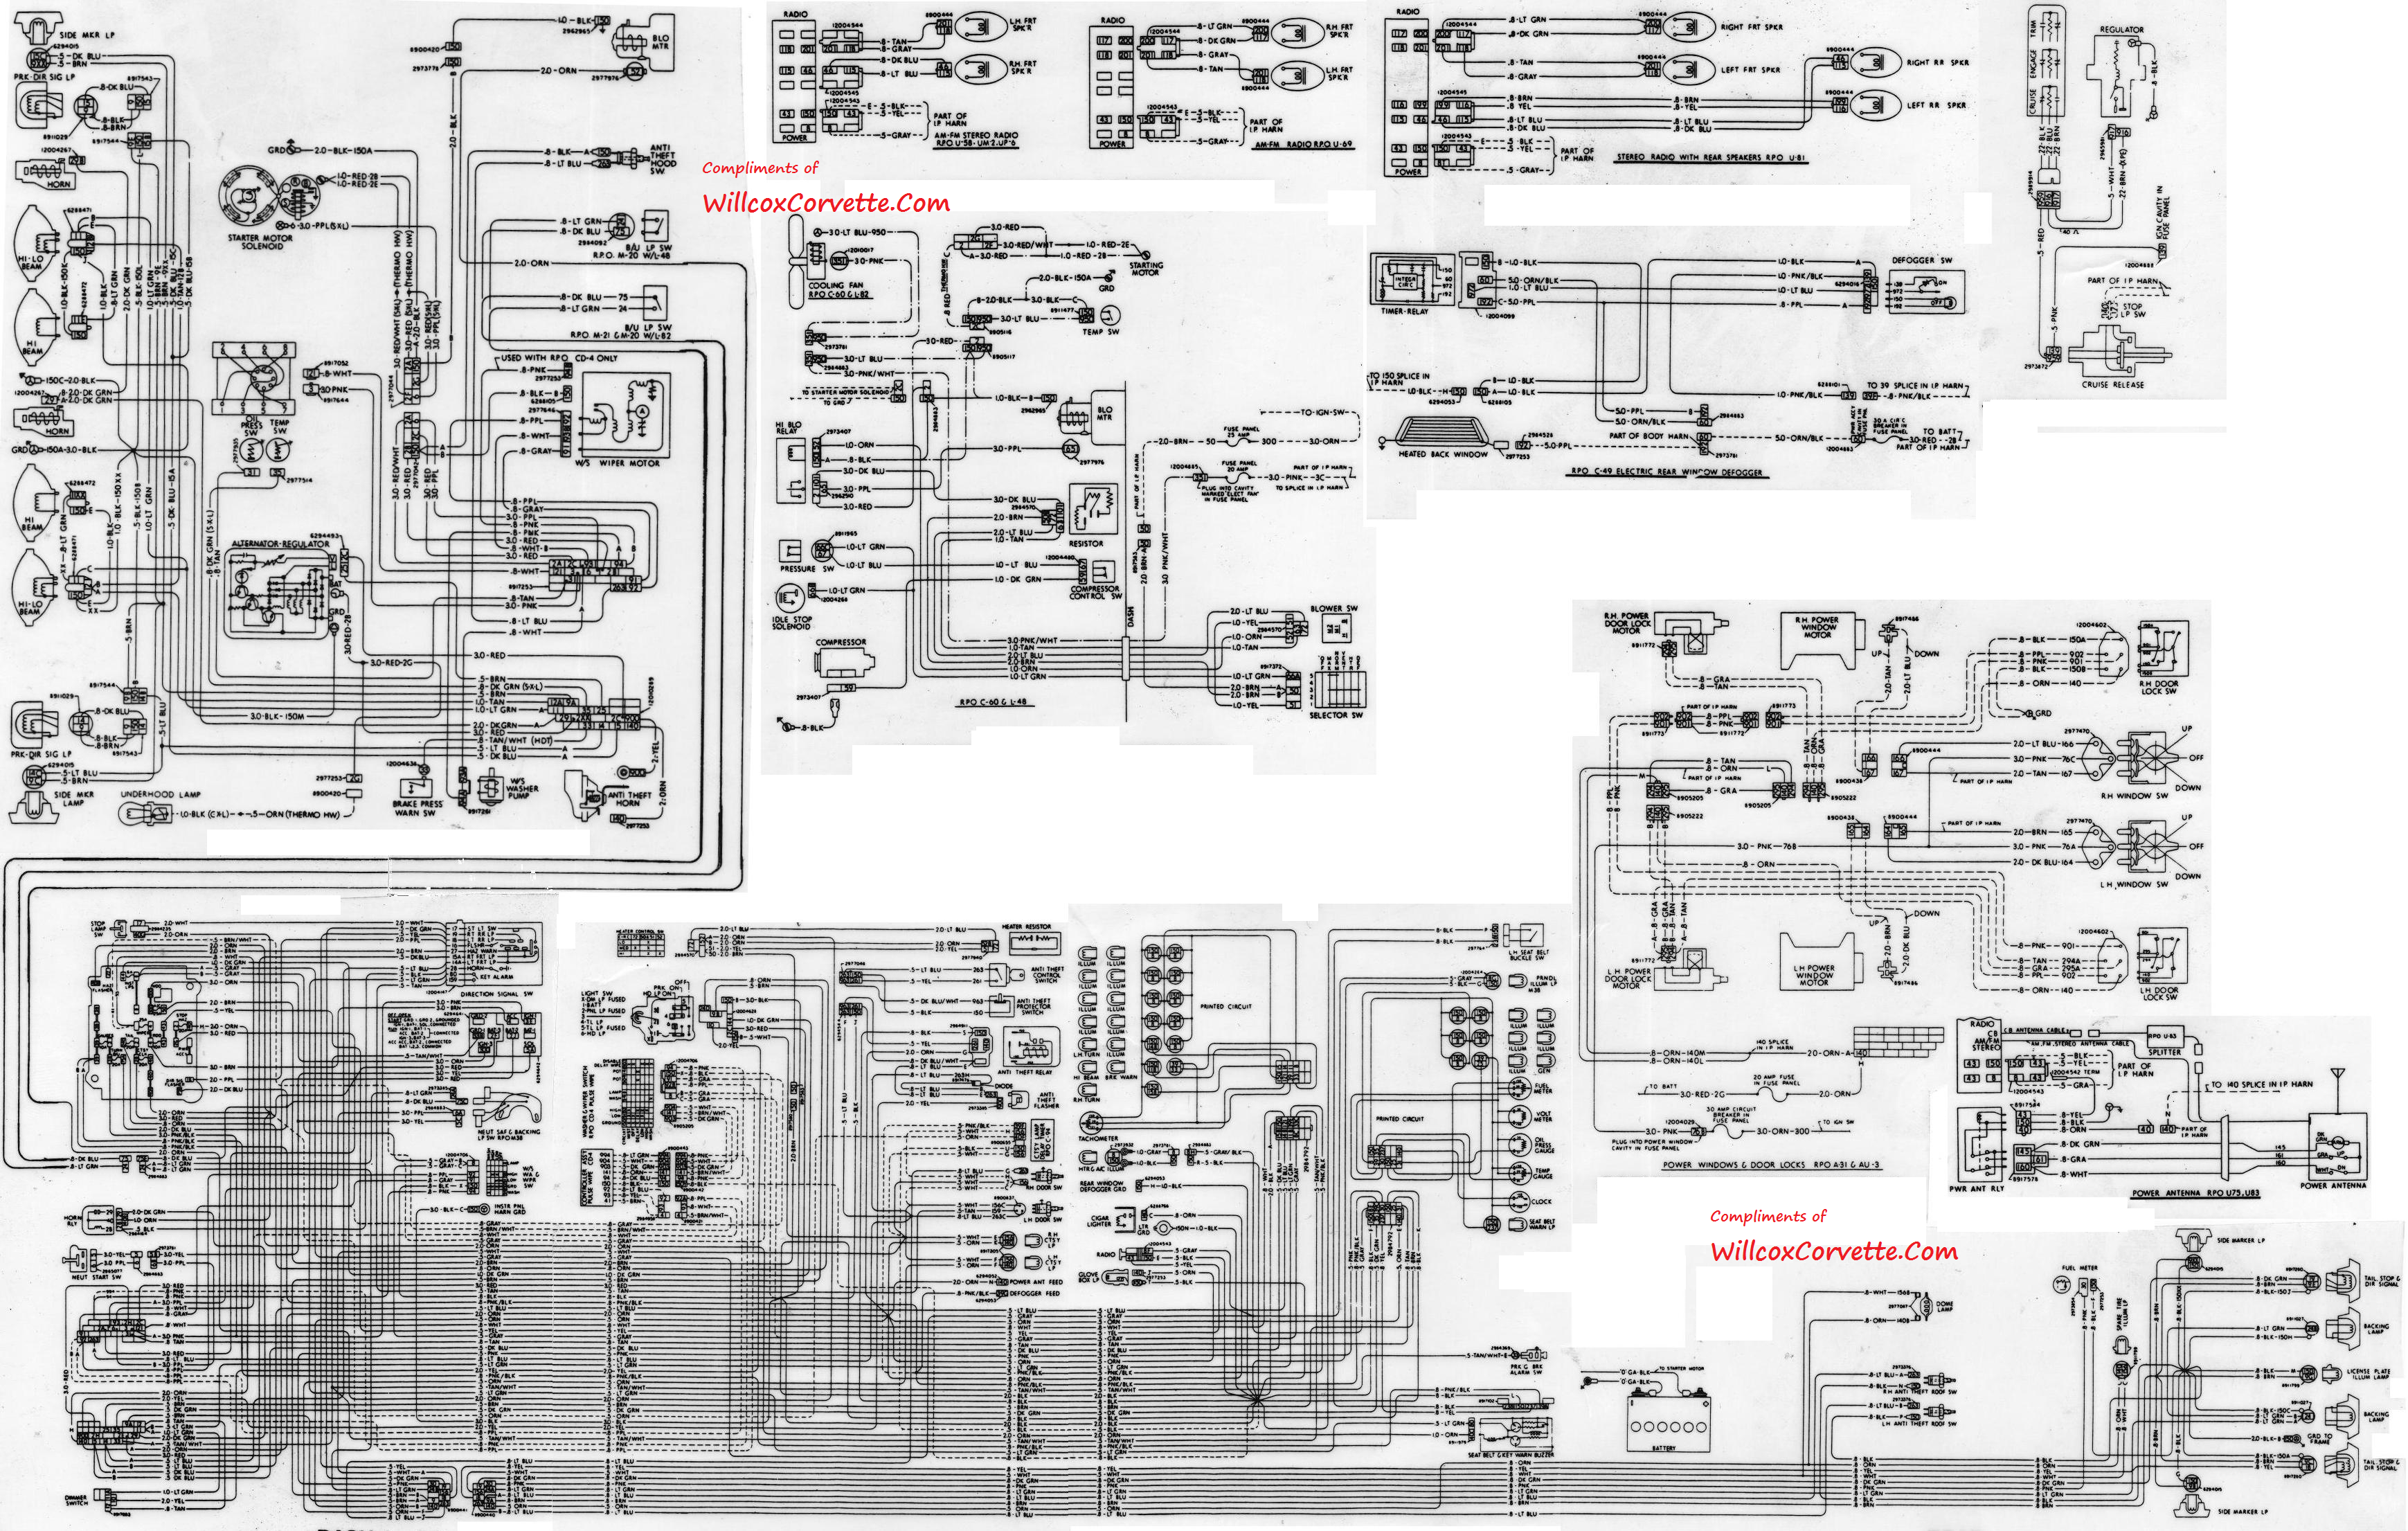 1979 wiring diagram corvetteforum chevrolet corvette forum rh corvetteforum com 1979 corvette wiring diagram pdf 1976 corvette wiring diagram